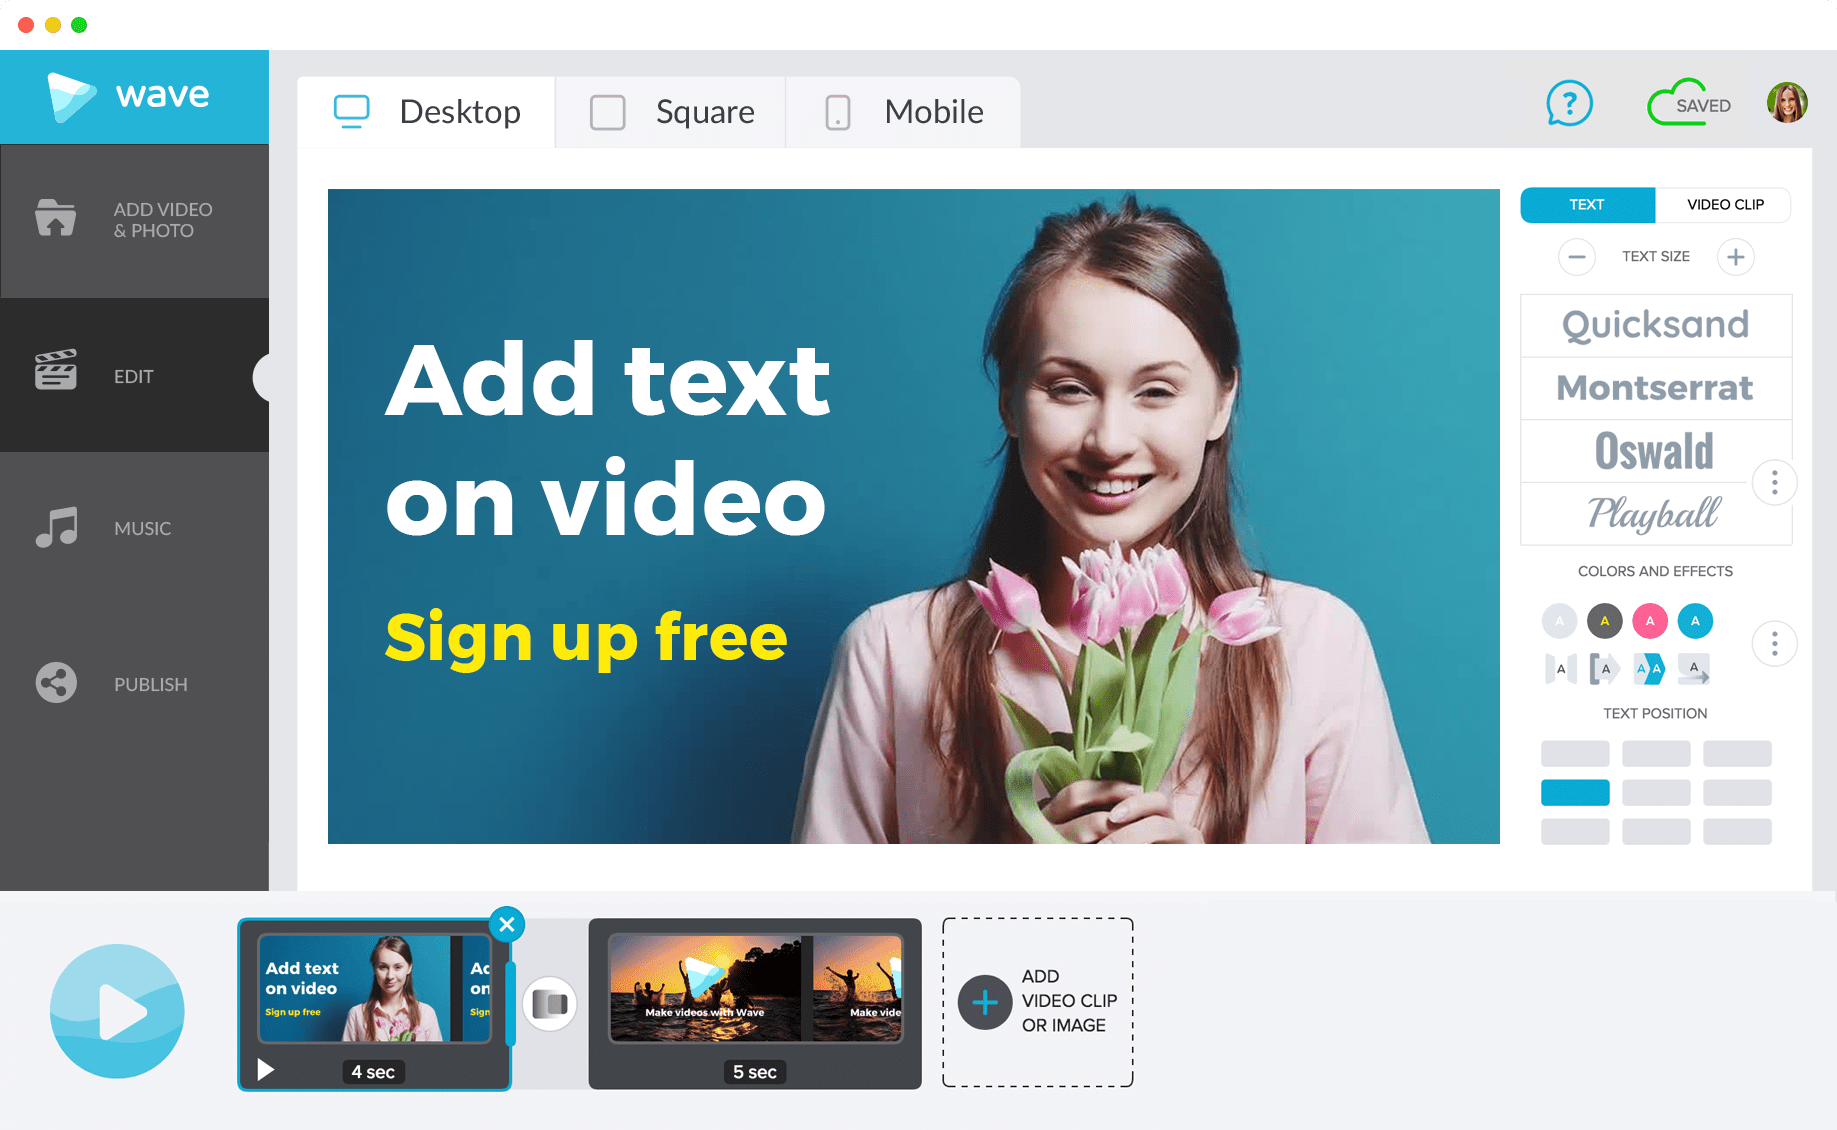 Wave.video is the best app to add text to video